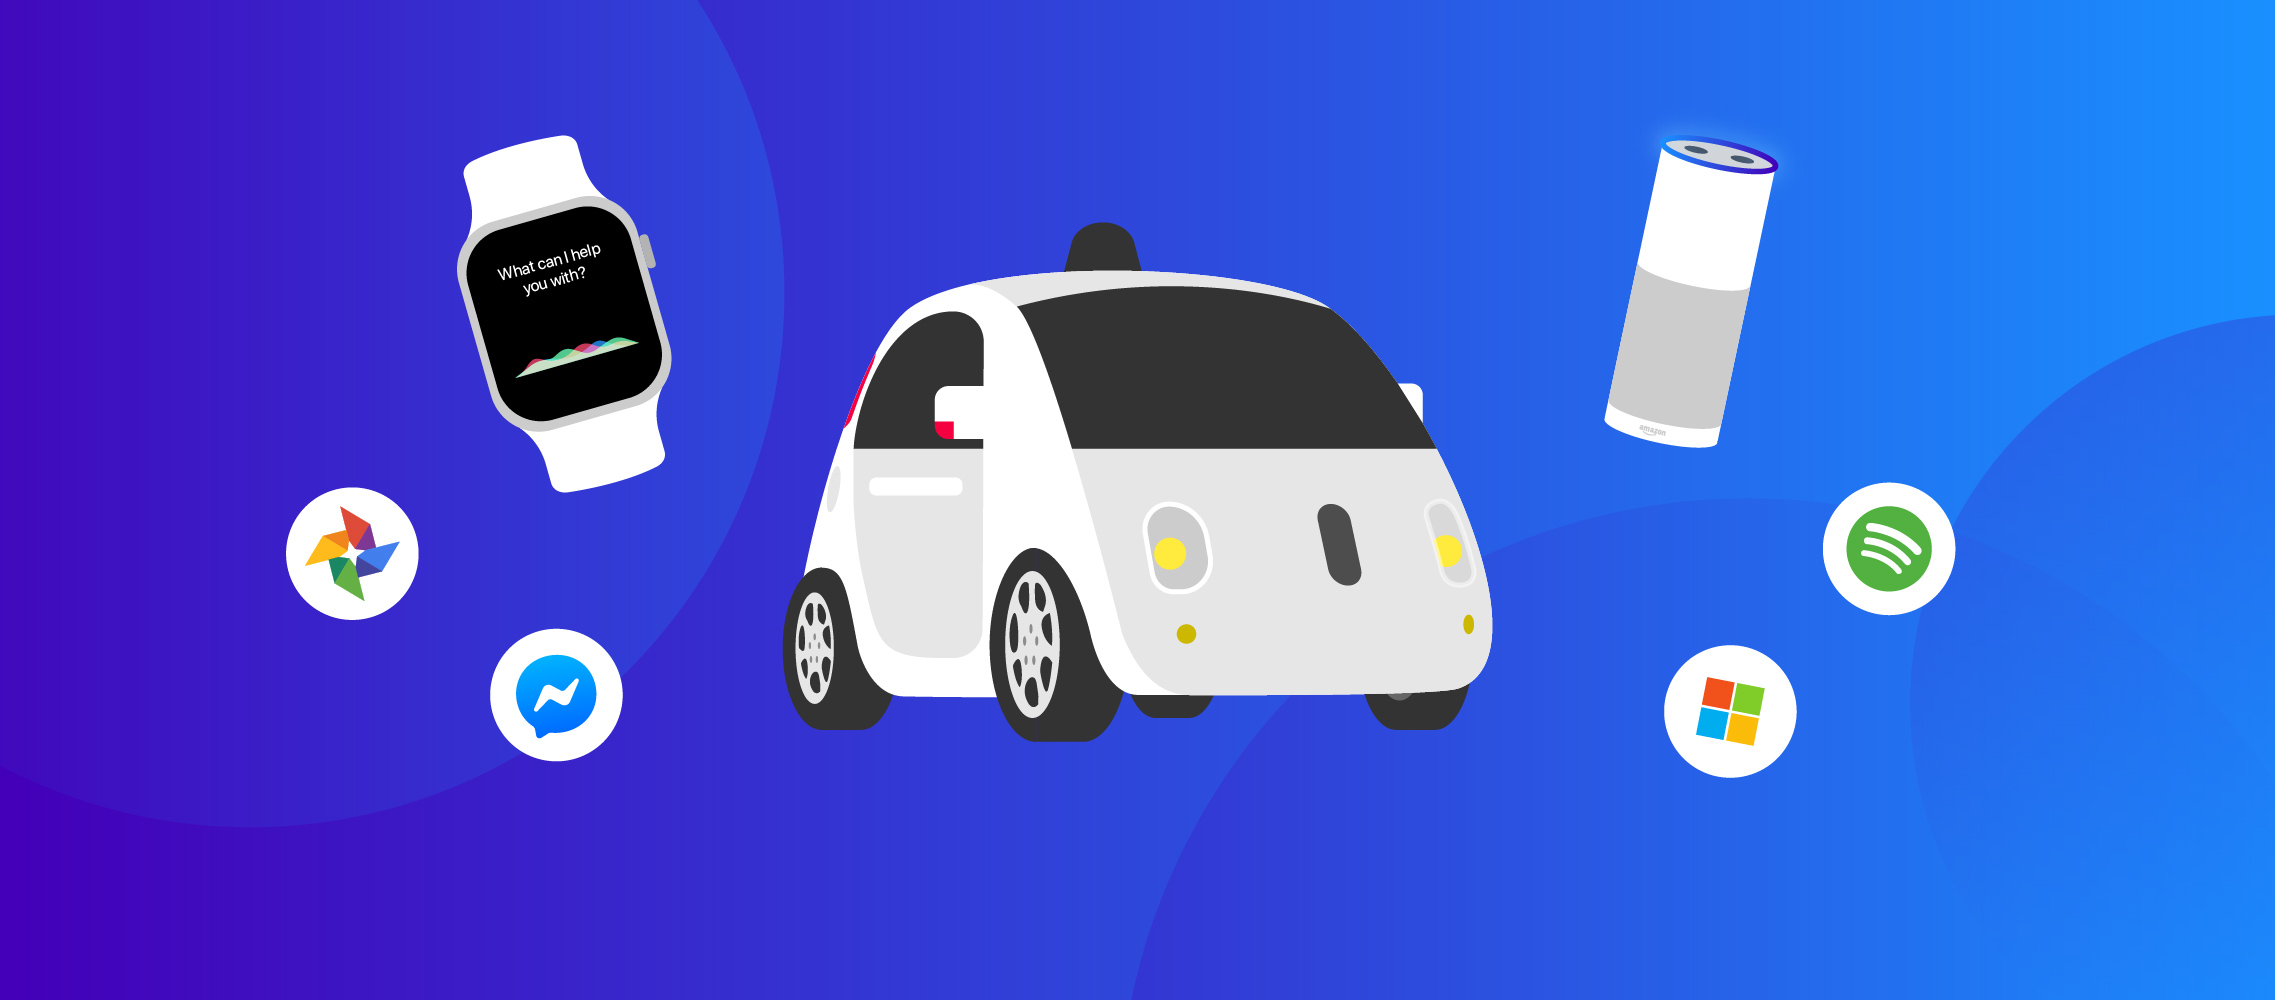 Illustration of Google driverless car, Amazon Echo, Apple watch, and logos for other AI-related applications.